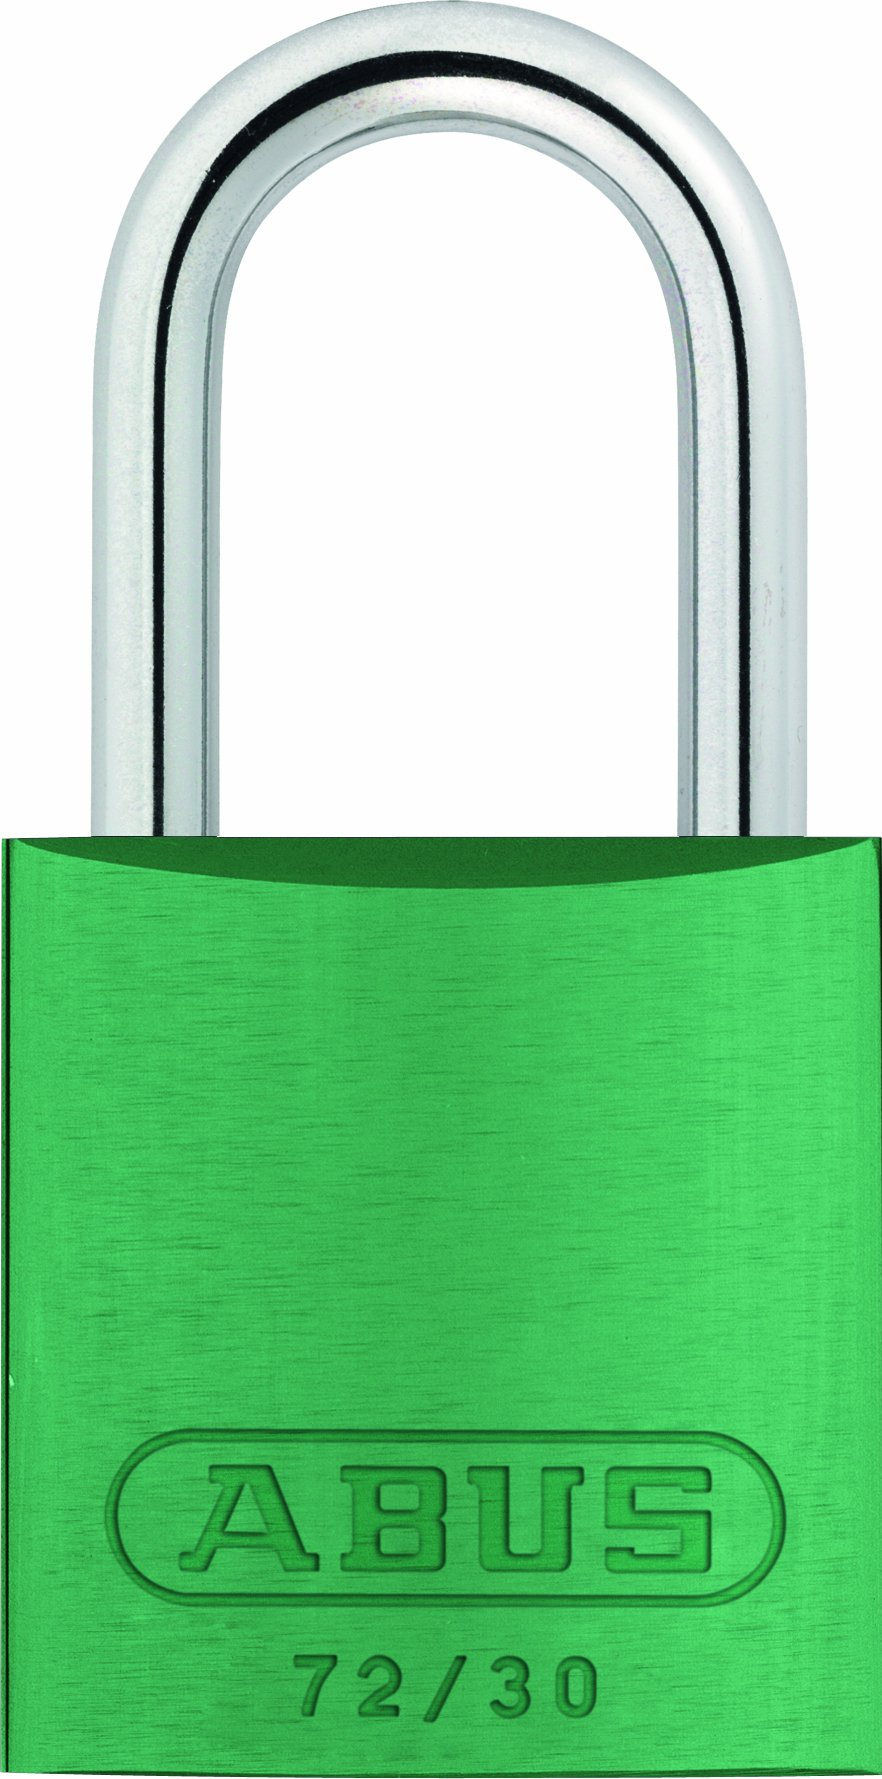 ABUS 72/30 KD Safety Lockout Aluminum Keyed Different Padlock, Green